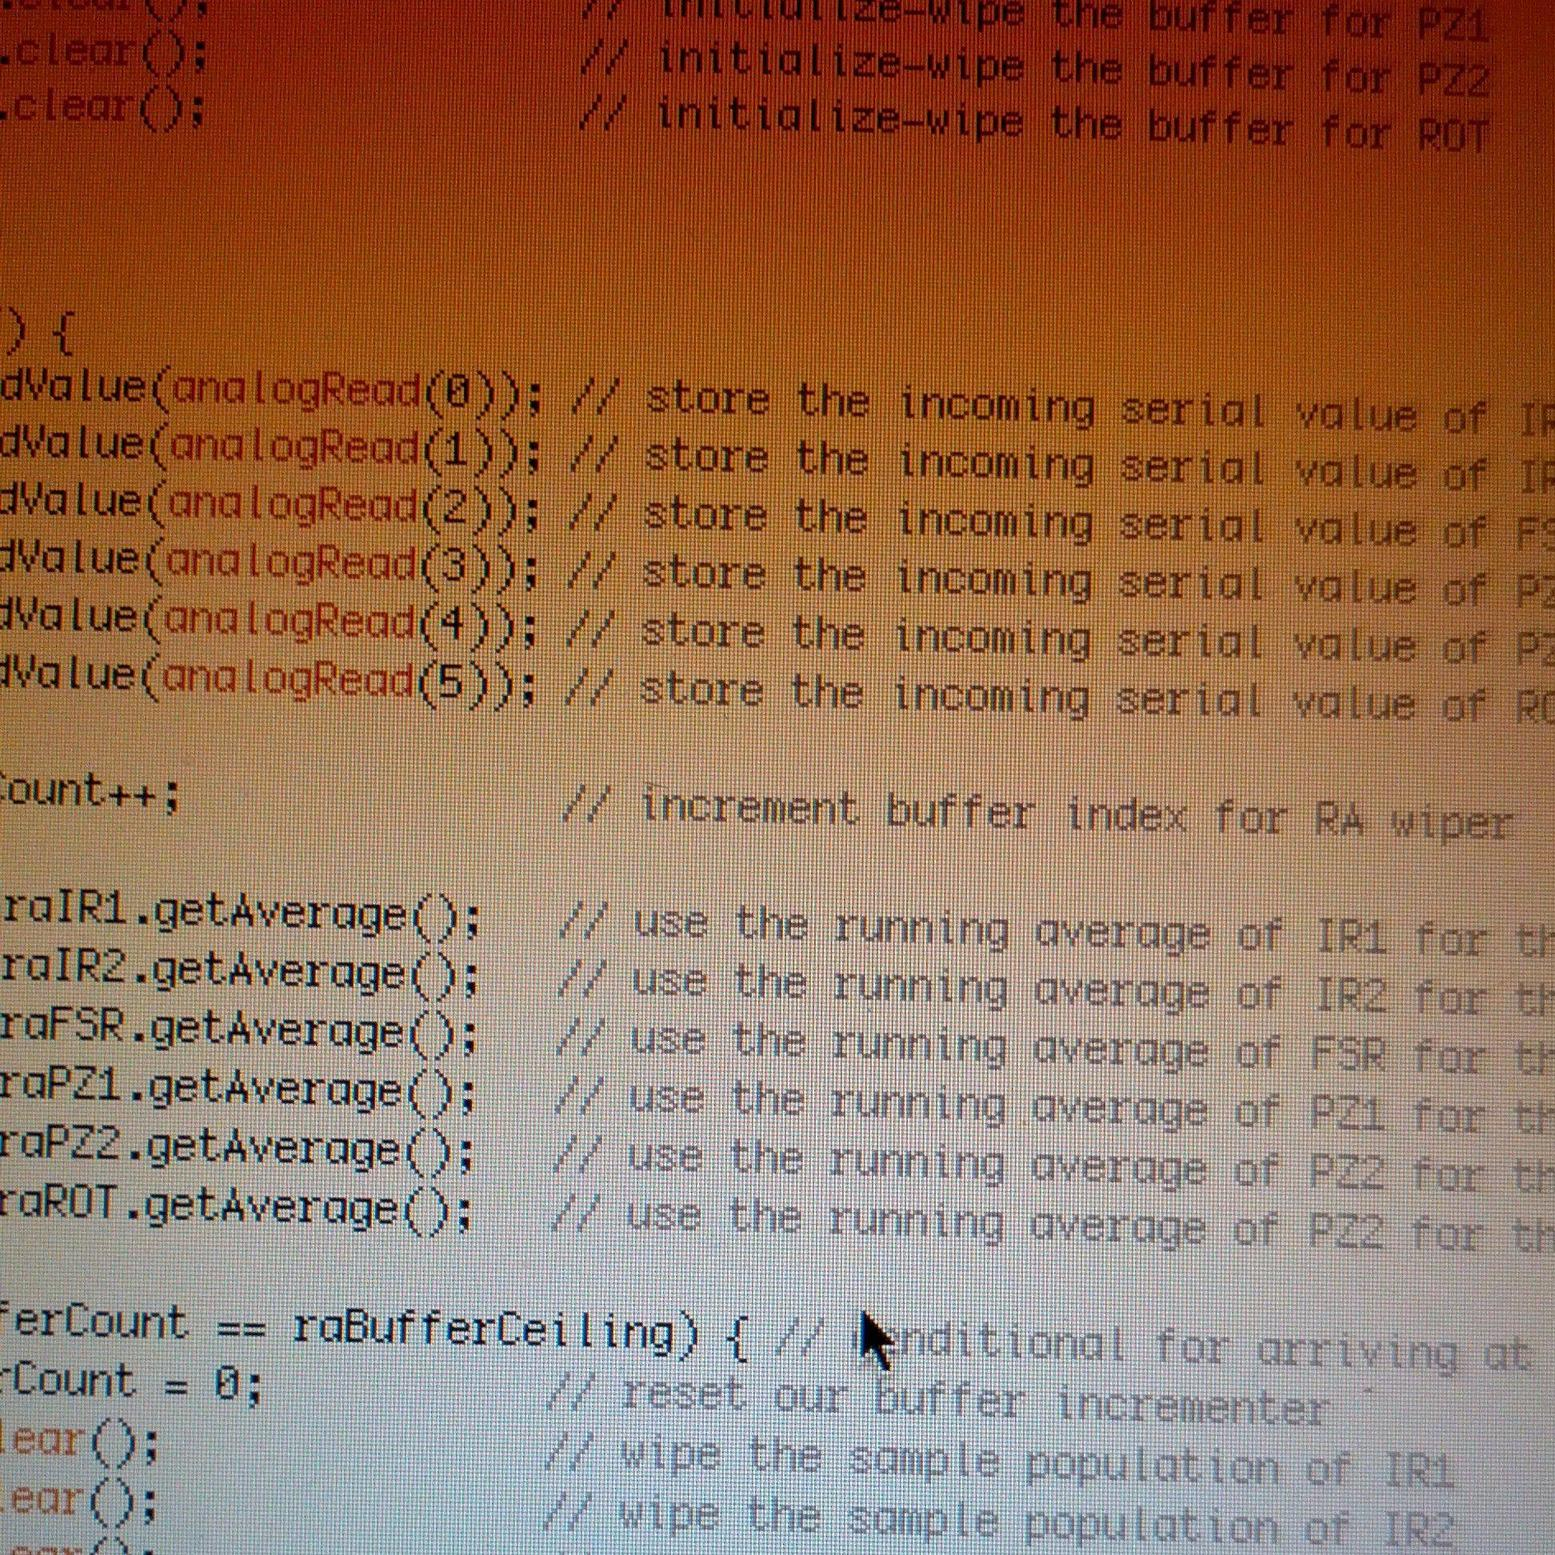 Experimenting with implementing a running average filter on all sensors